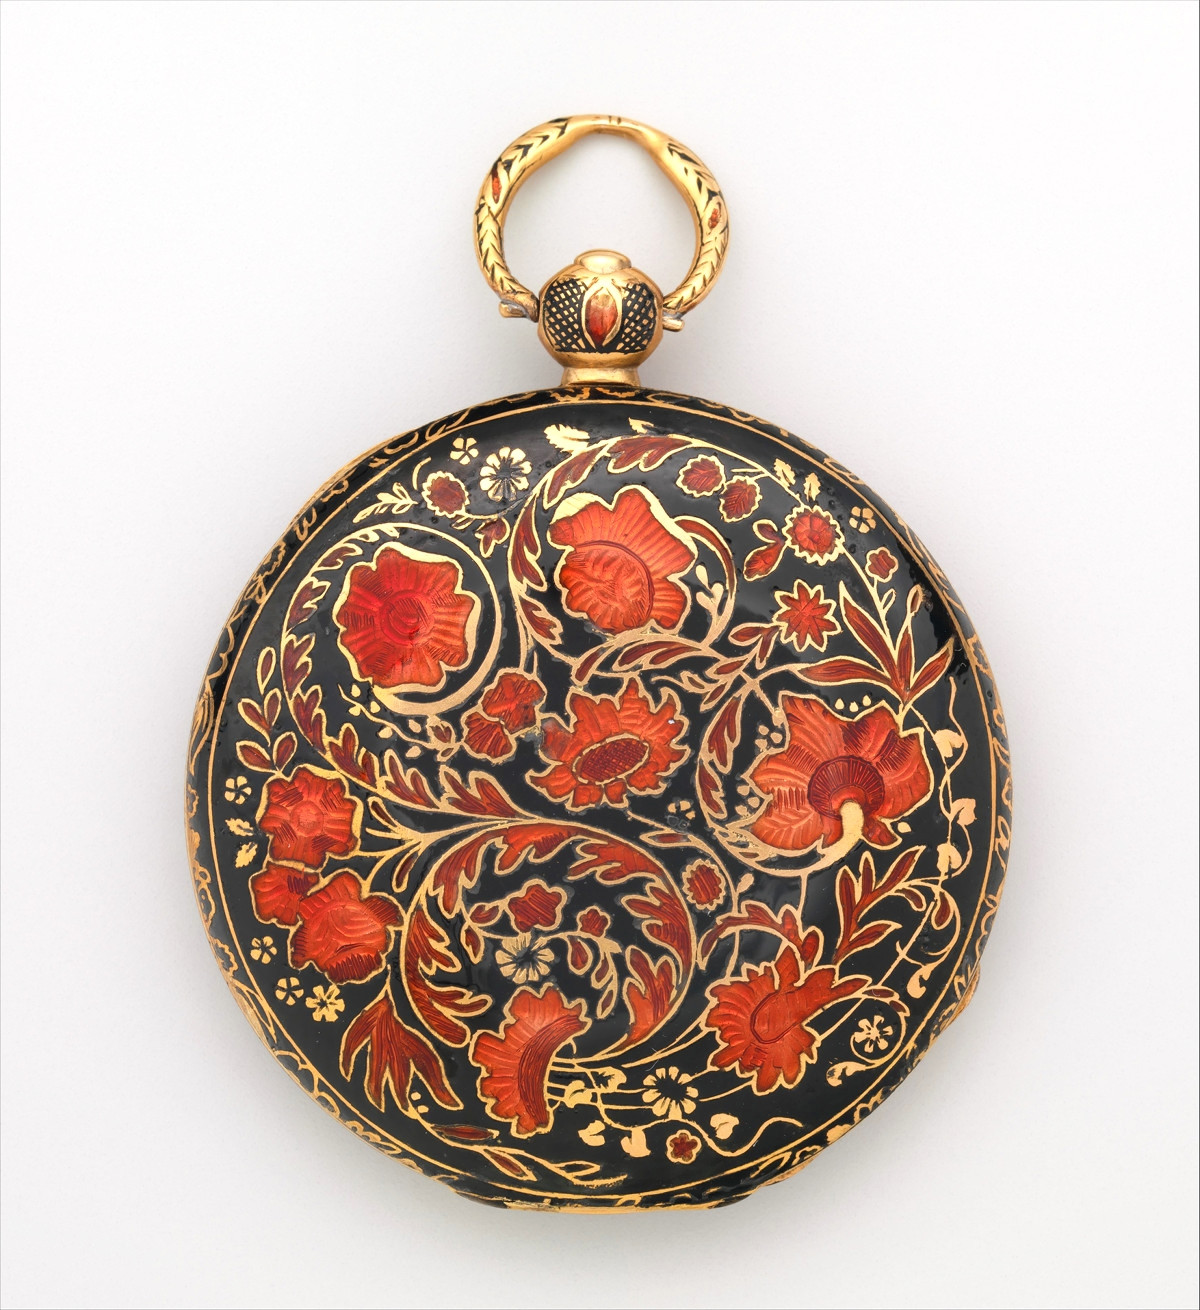 1830. Watch. Swiss, Geneva. Case of gold and enamel, with floral design; jeweled movement, with cylinder escapement. metmuseum